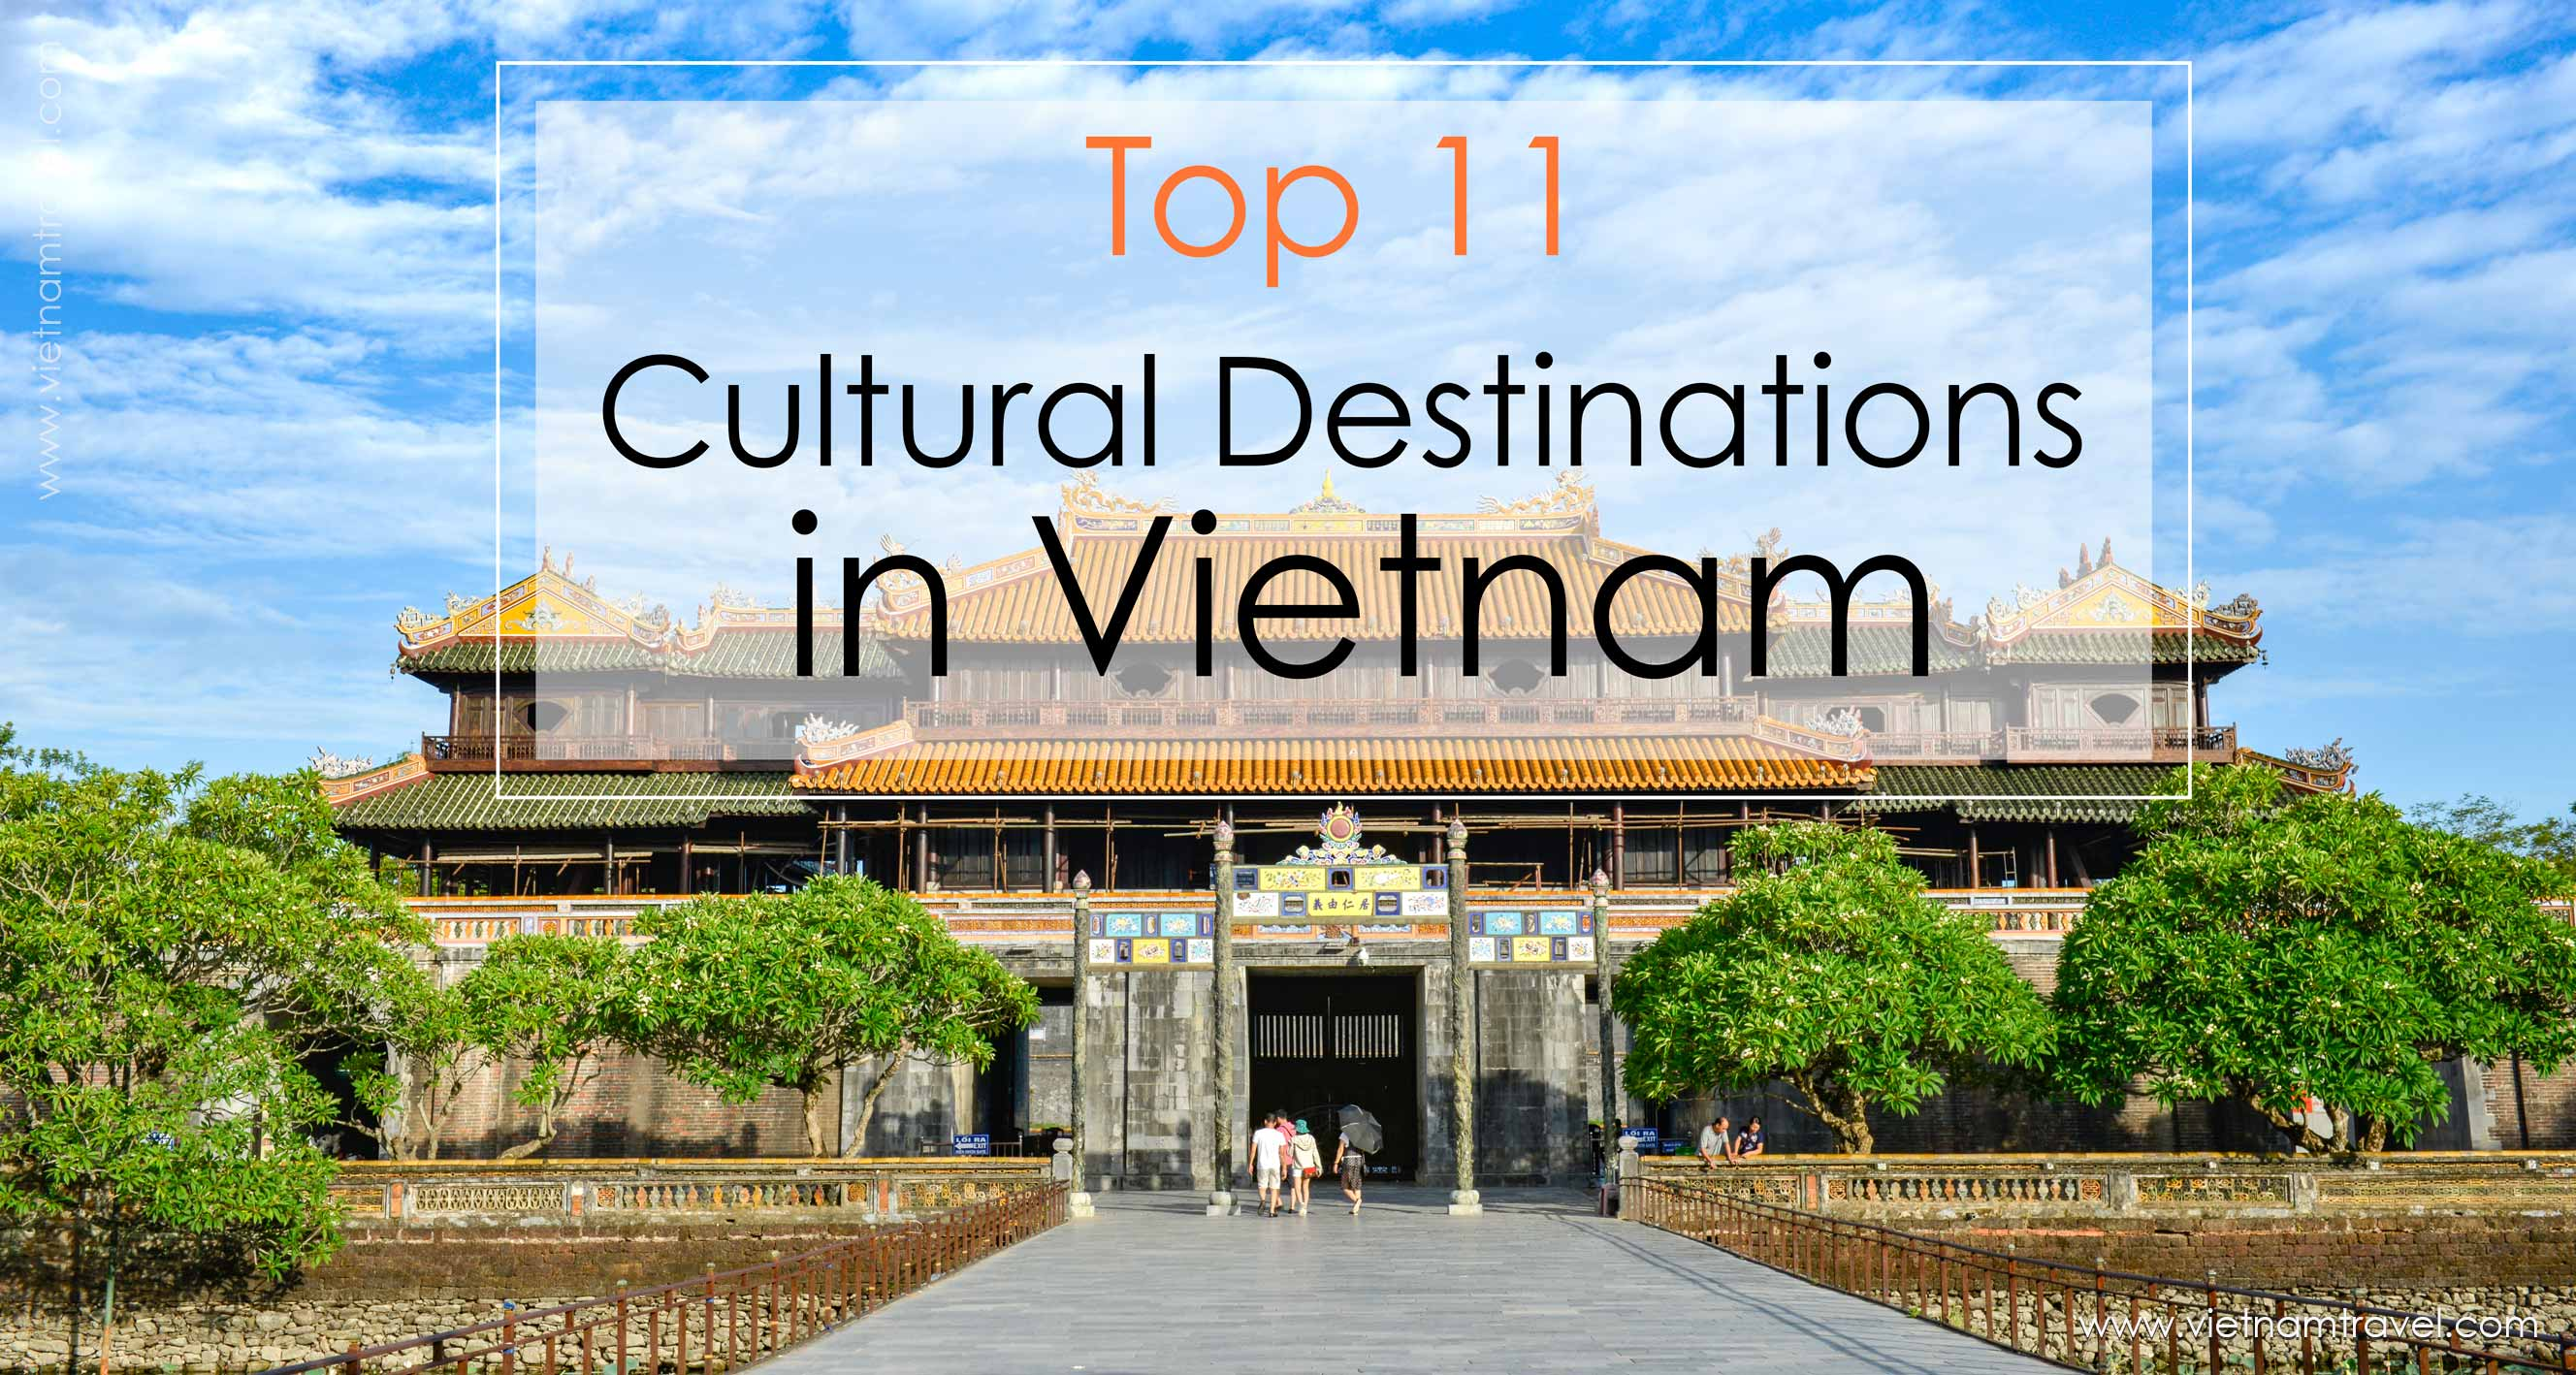 The Top 11 Cultural Destinations in Vietnam from the North to the South